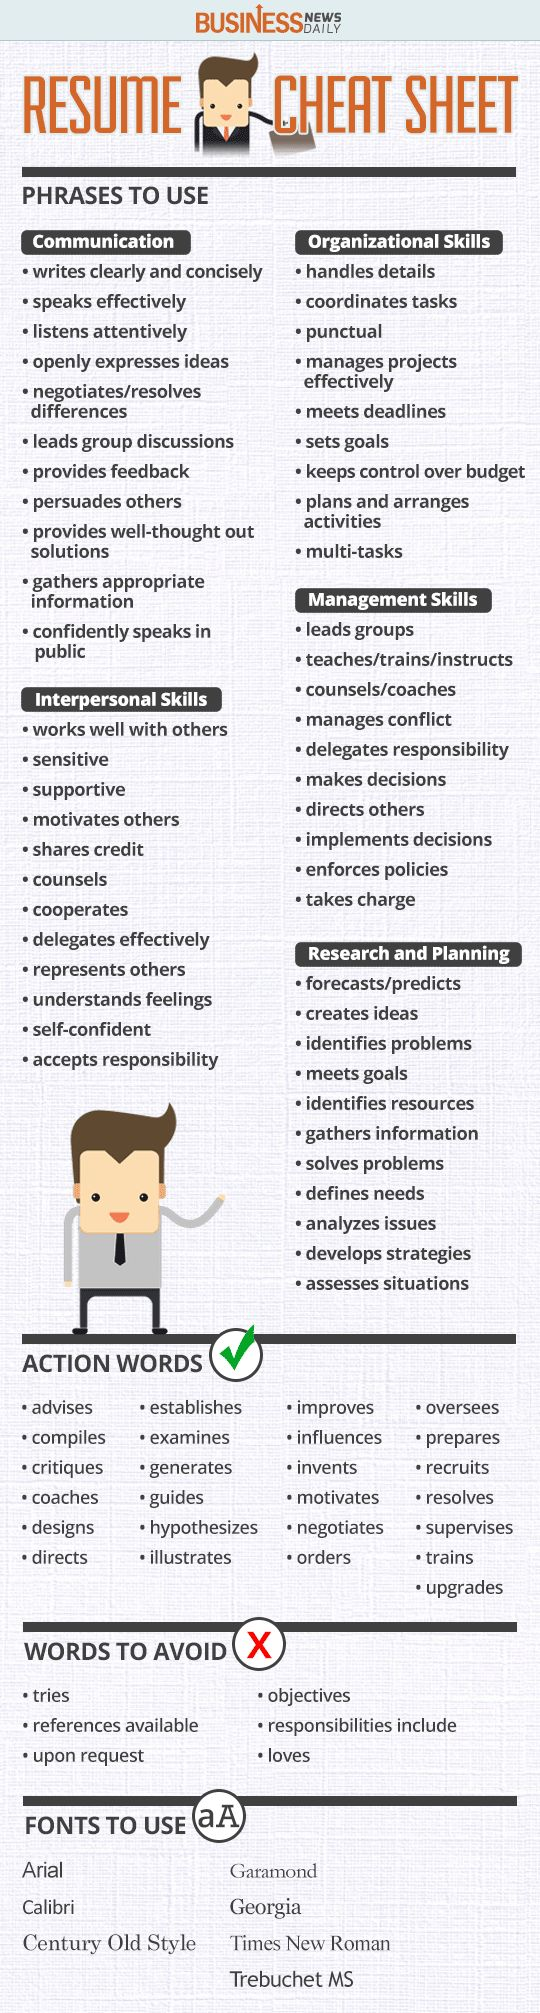 Opposenewapstandardsus  Splendid  Ideas About Resume On Pinterest  Cv Format Resume  With Interesting Resume Cheat Sheet Infographic Andrews Almost Done With A Complete Unit On Employment Which With Awesome Datastage Resume Also List Of Customer Service Skills For Resume In Addition How To Draft A Resume And City Manager Resume As Well As Criminal Justice Resume Templates Additionally Cover Letters Resume From Pinterestcom With Opposenewapstandardsus  Interesting  Ideas About Resume On Pinterest  Cv Format Resume  With Awesome Resume Cheat Sheet Infographic Andrews Almost Done With A Complete Unit On Employment Which And Splendid Datastage Resume Also List Of Customer Service Skills For Resume In Addition How To Draft A Resume From Pinterestcom